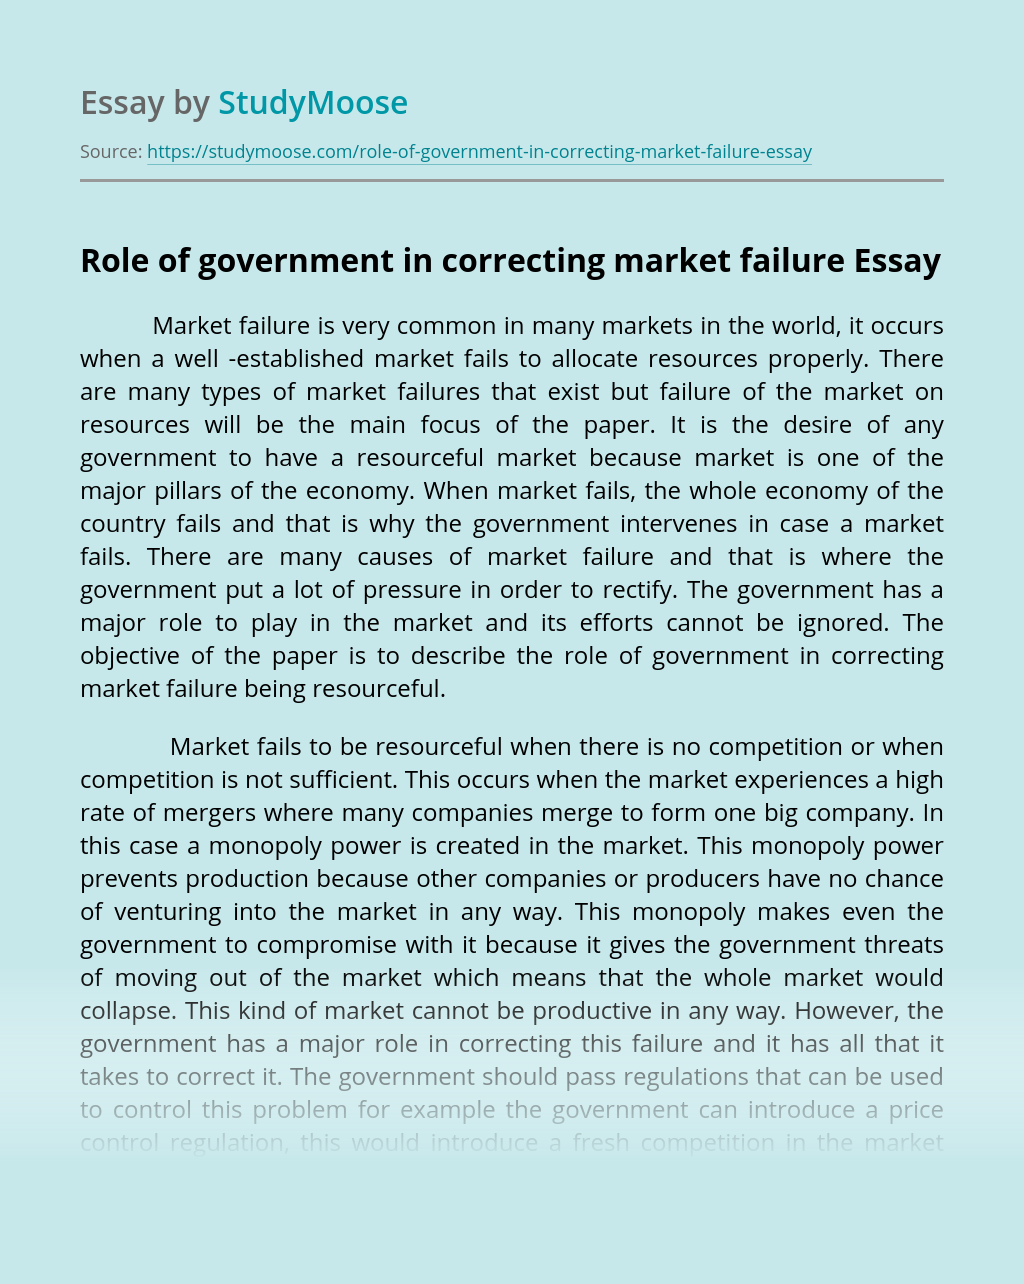 Role of government in correcting market failure